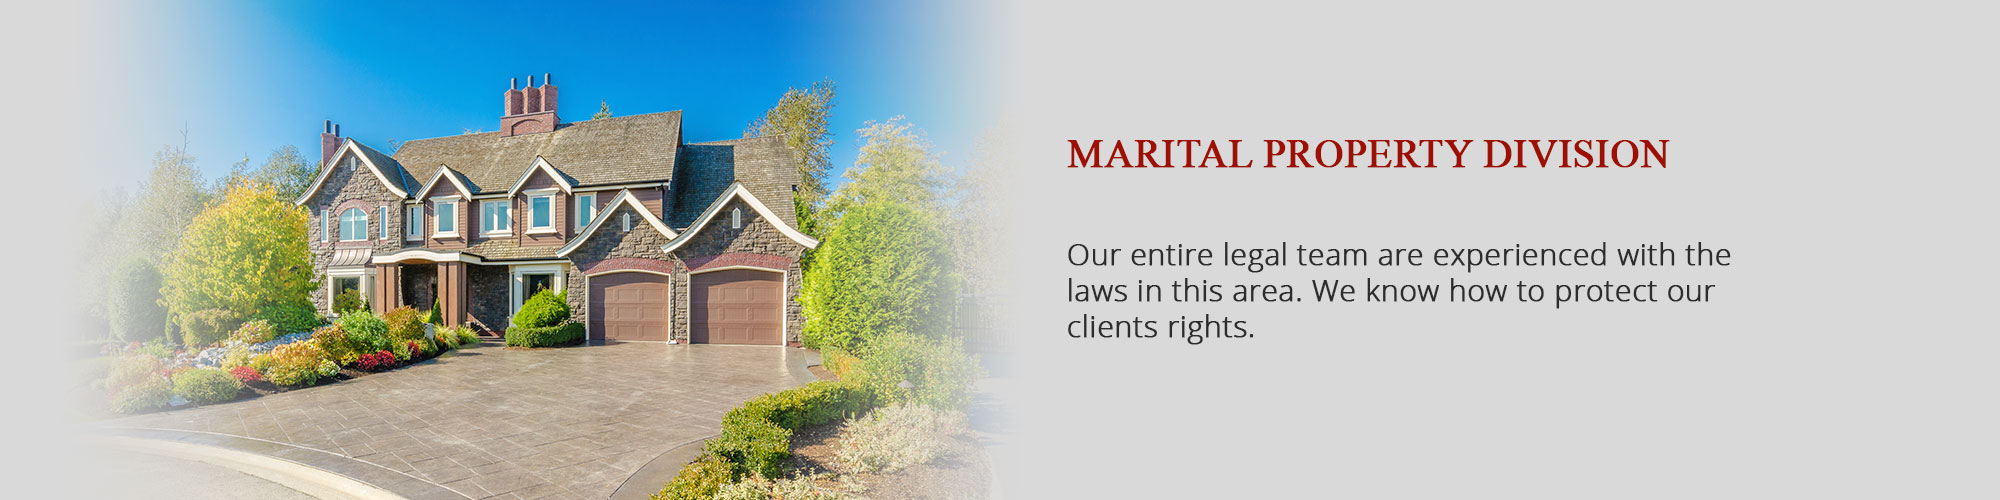 Marital Property Lawyers in Dallas